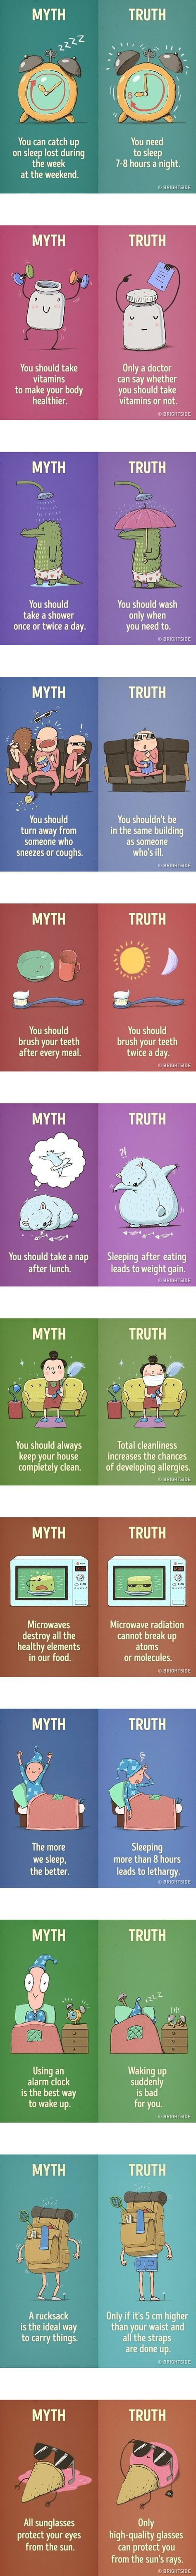 12 Bad Habits We Mistake for Good Ones (Illustrated by Leonid Khan)